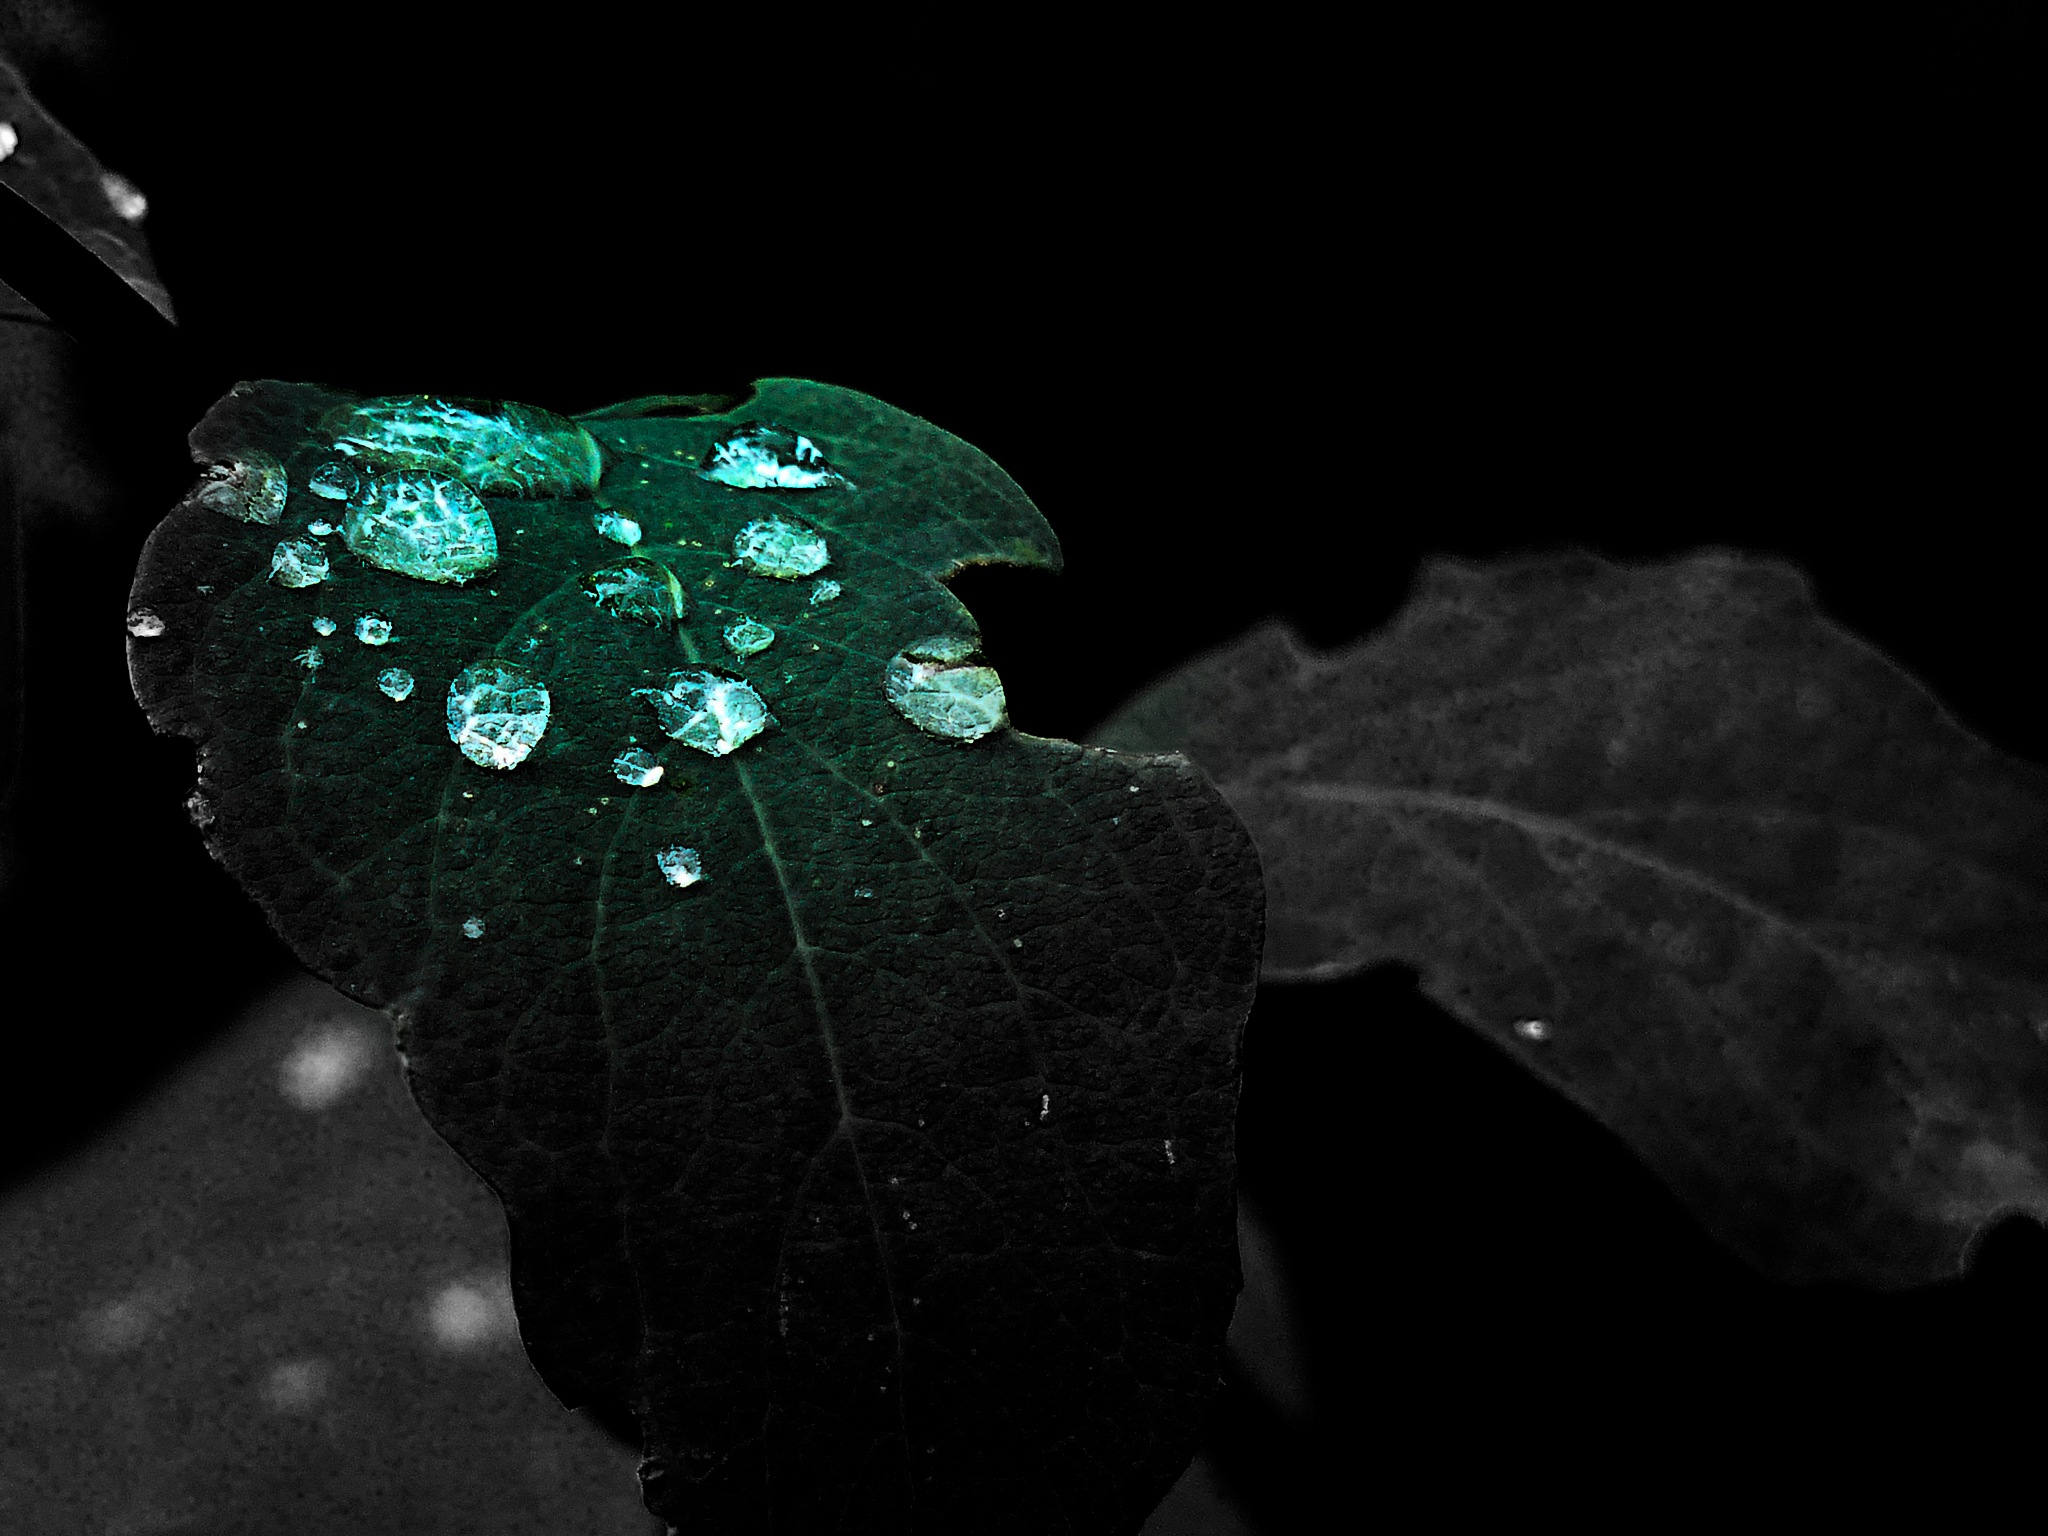 The Green Drops by Brigitte Werner